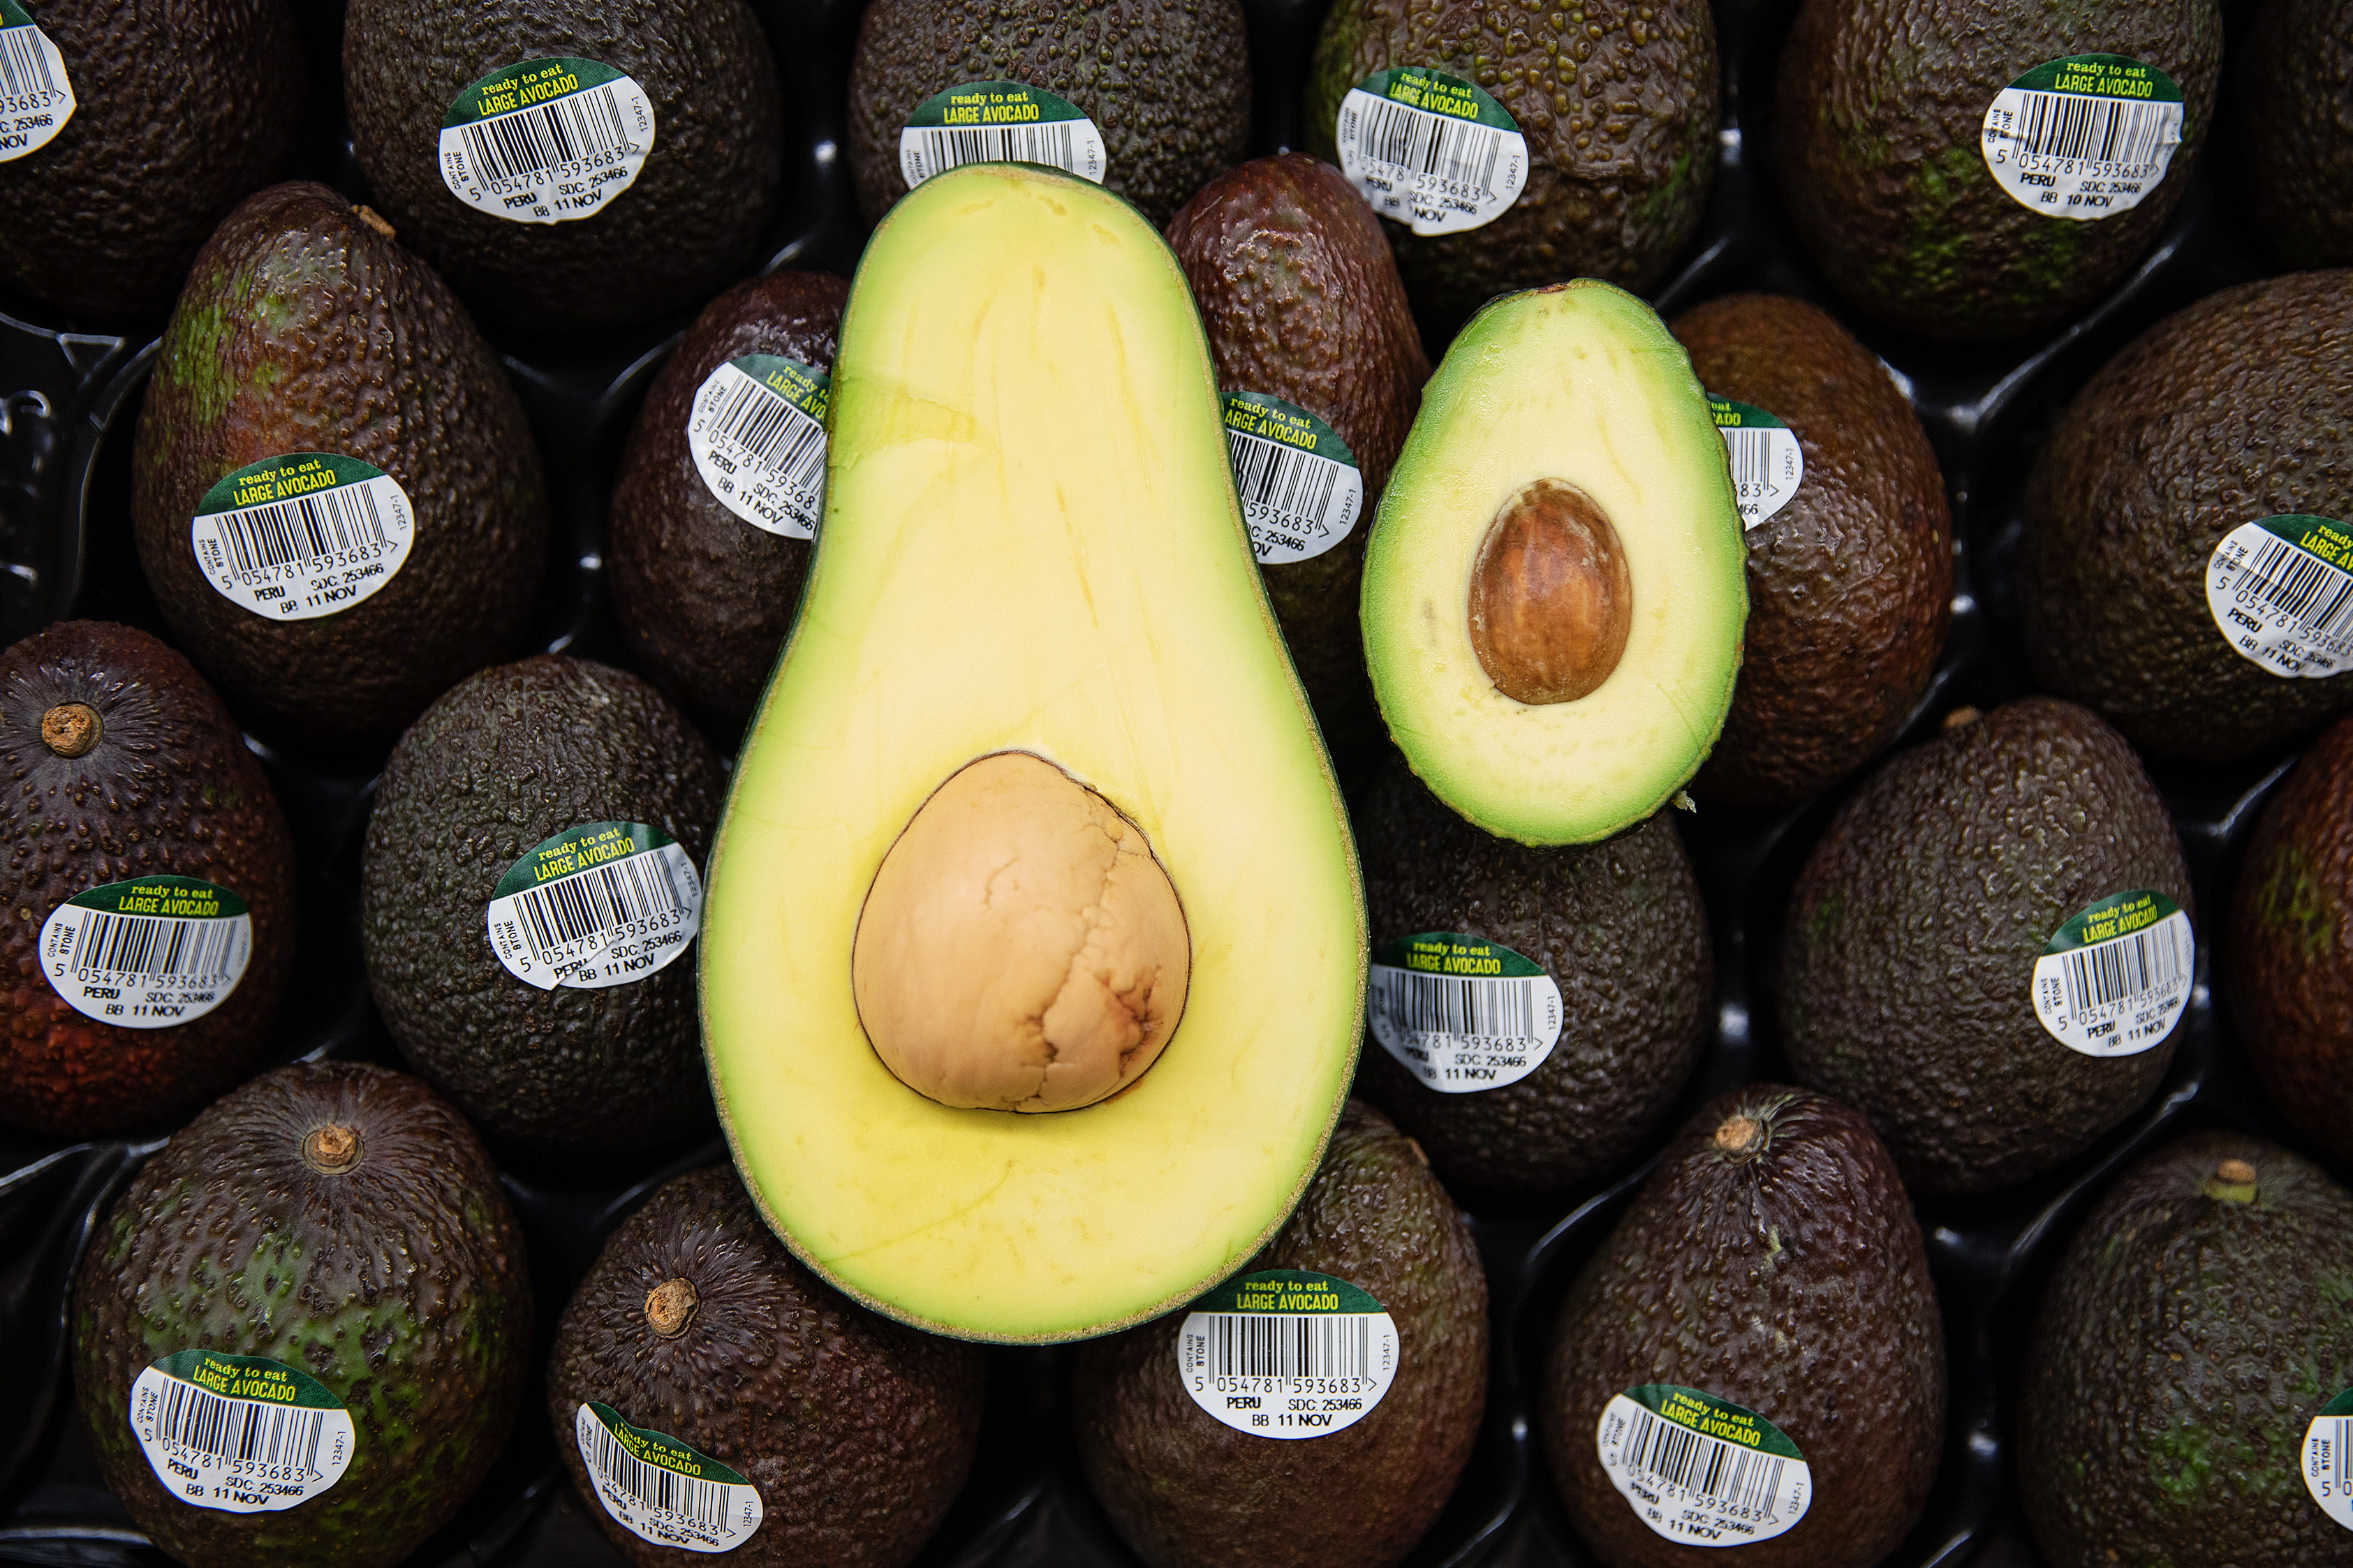 ASDA Giant Avocados - London 9th Nov 2018